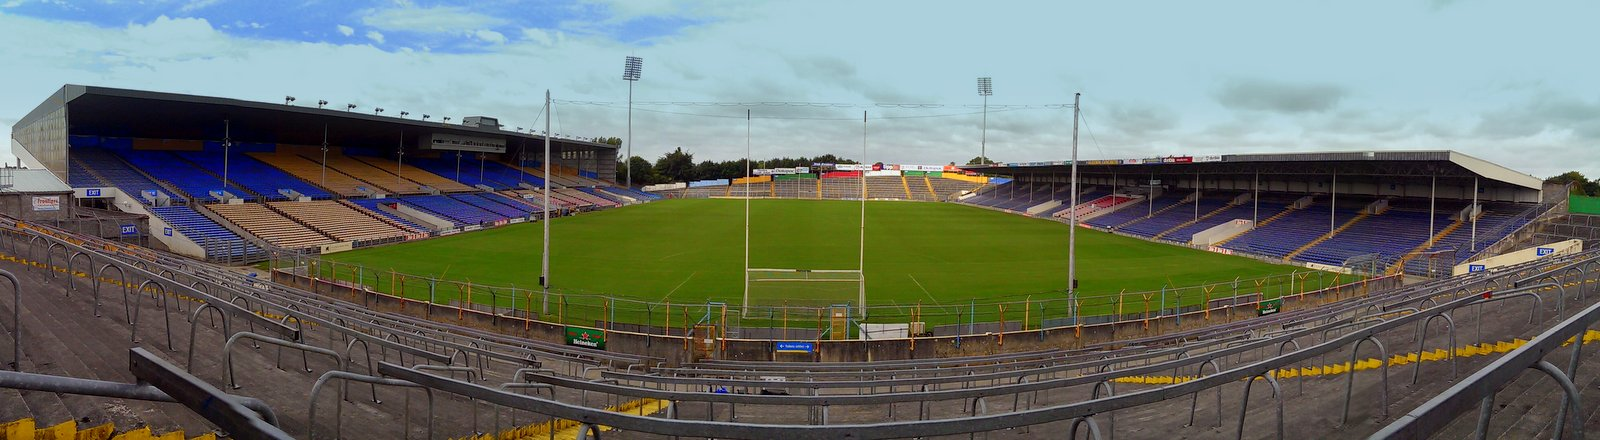 Semple Stadium panoramic view from Town End terrace